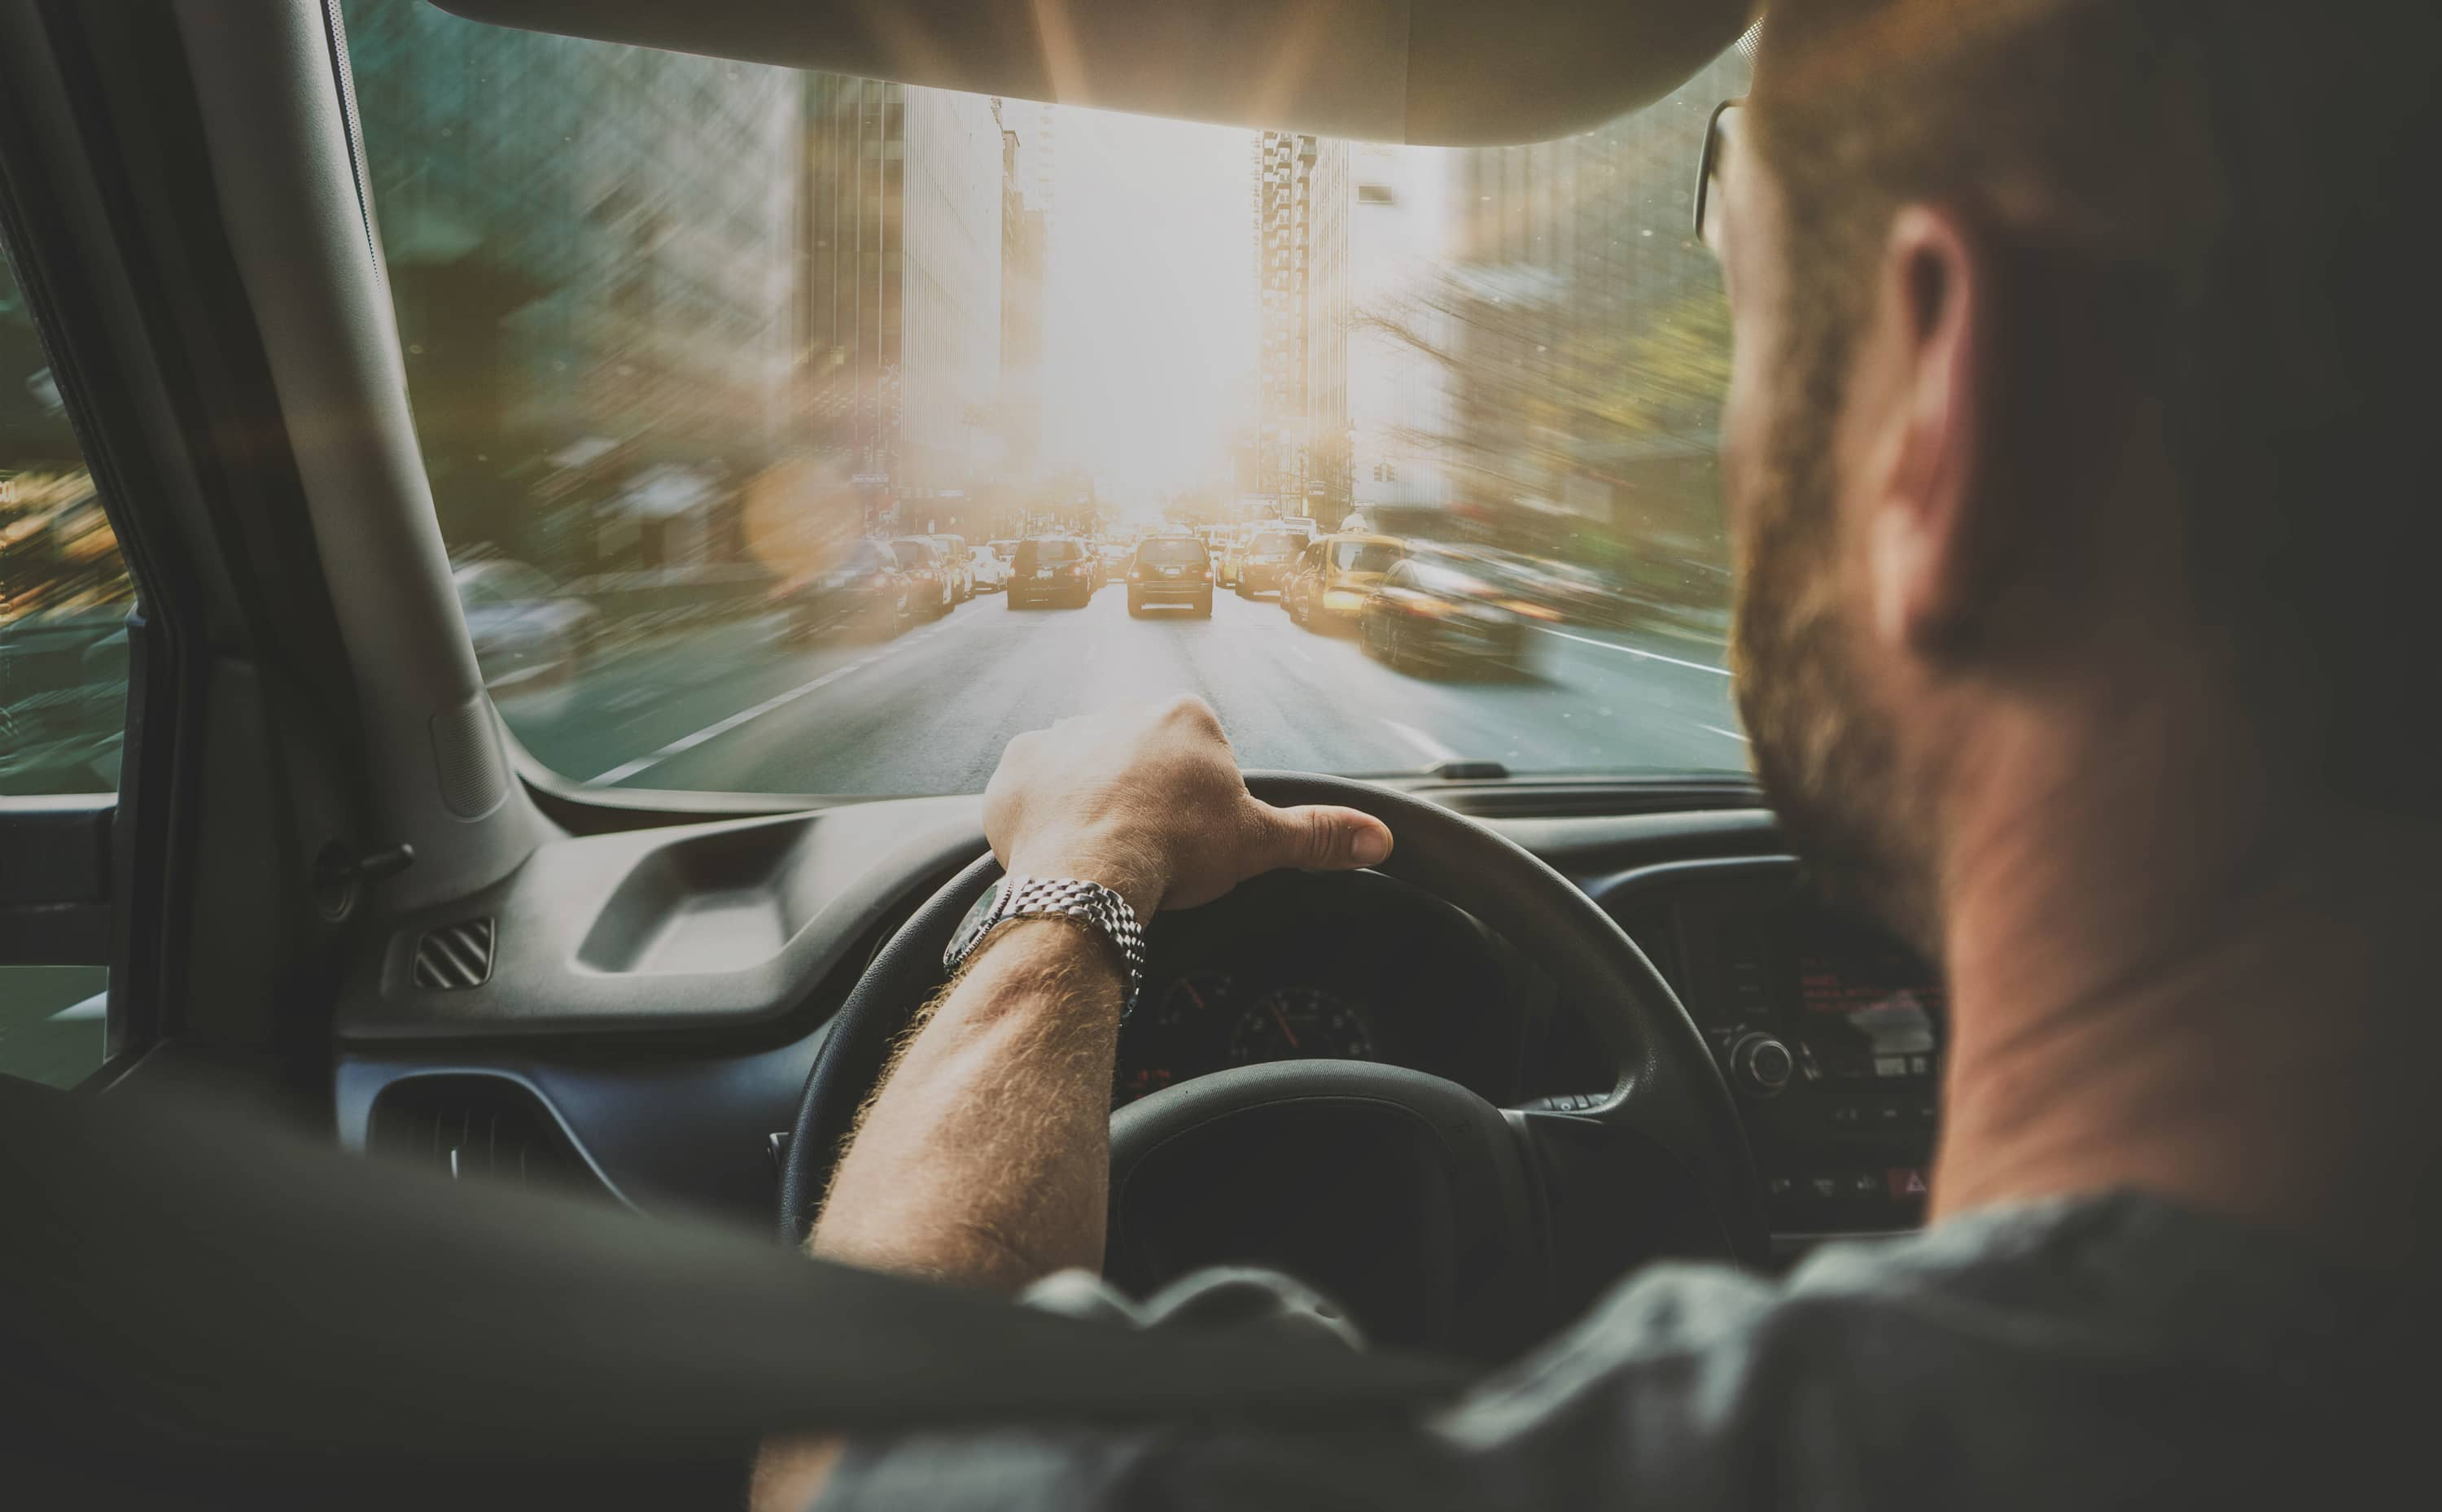 Water-based flame retardants for a safe ride